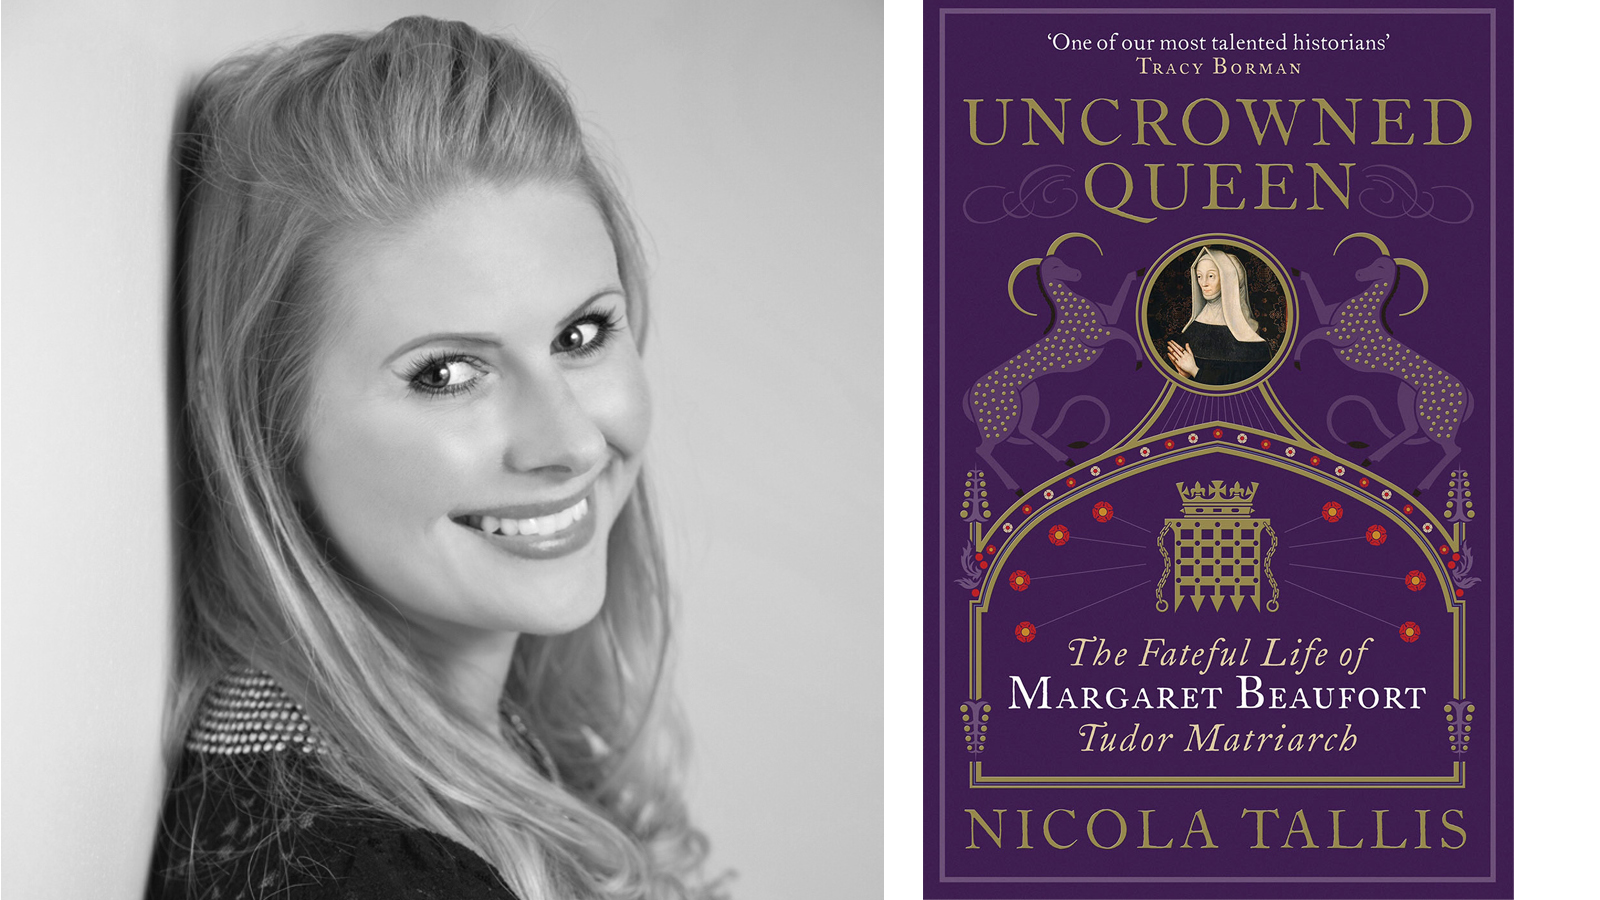 Photograph of Nicola Tallis by Joey Menghini, alongside cover art for her book Uncrowned Queen